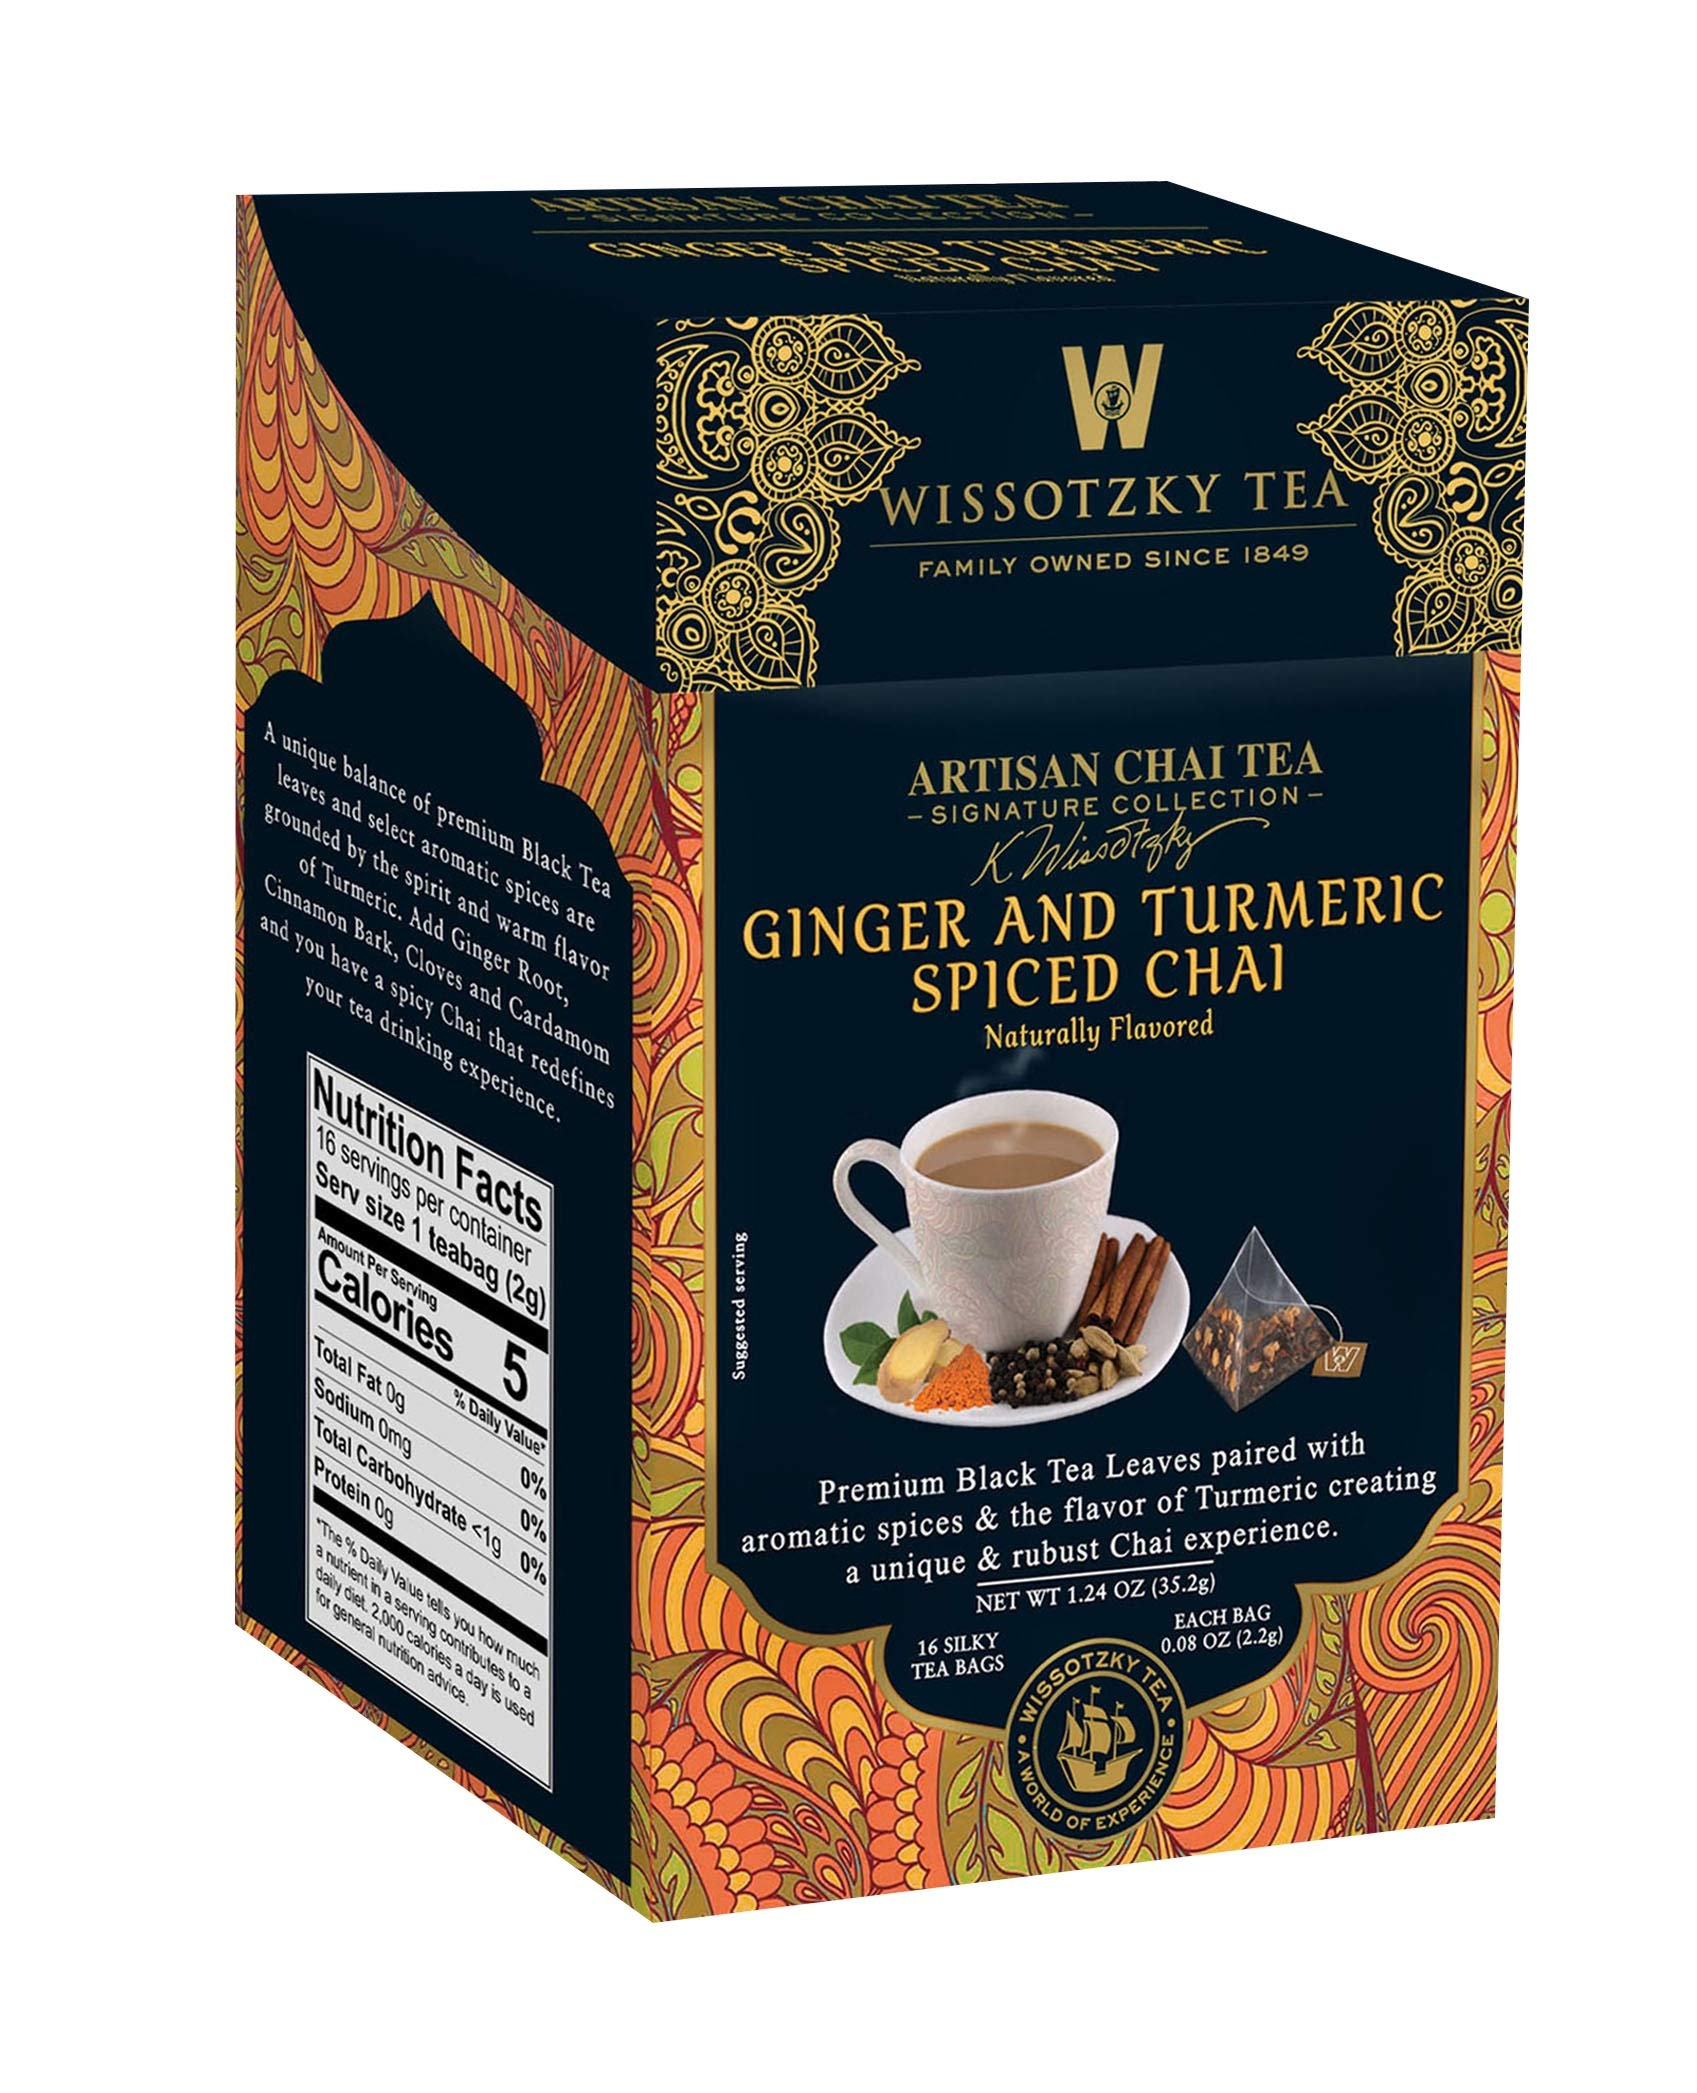 Wissotzky Tea Signature Collection, Artisan Chai Tea, Ginger & Turmeric Spiced Chai, 16Count, (Pack of 6)